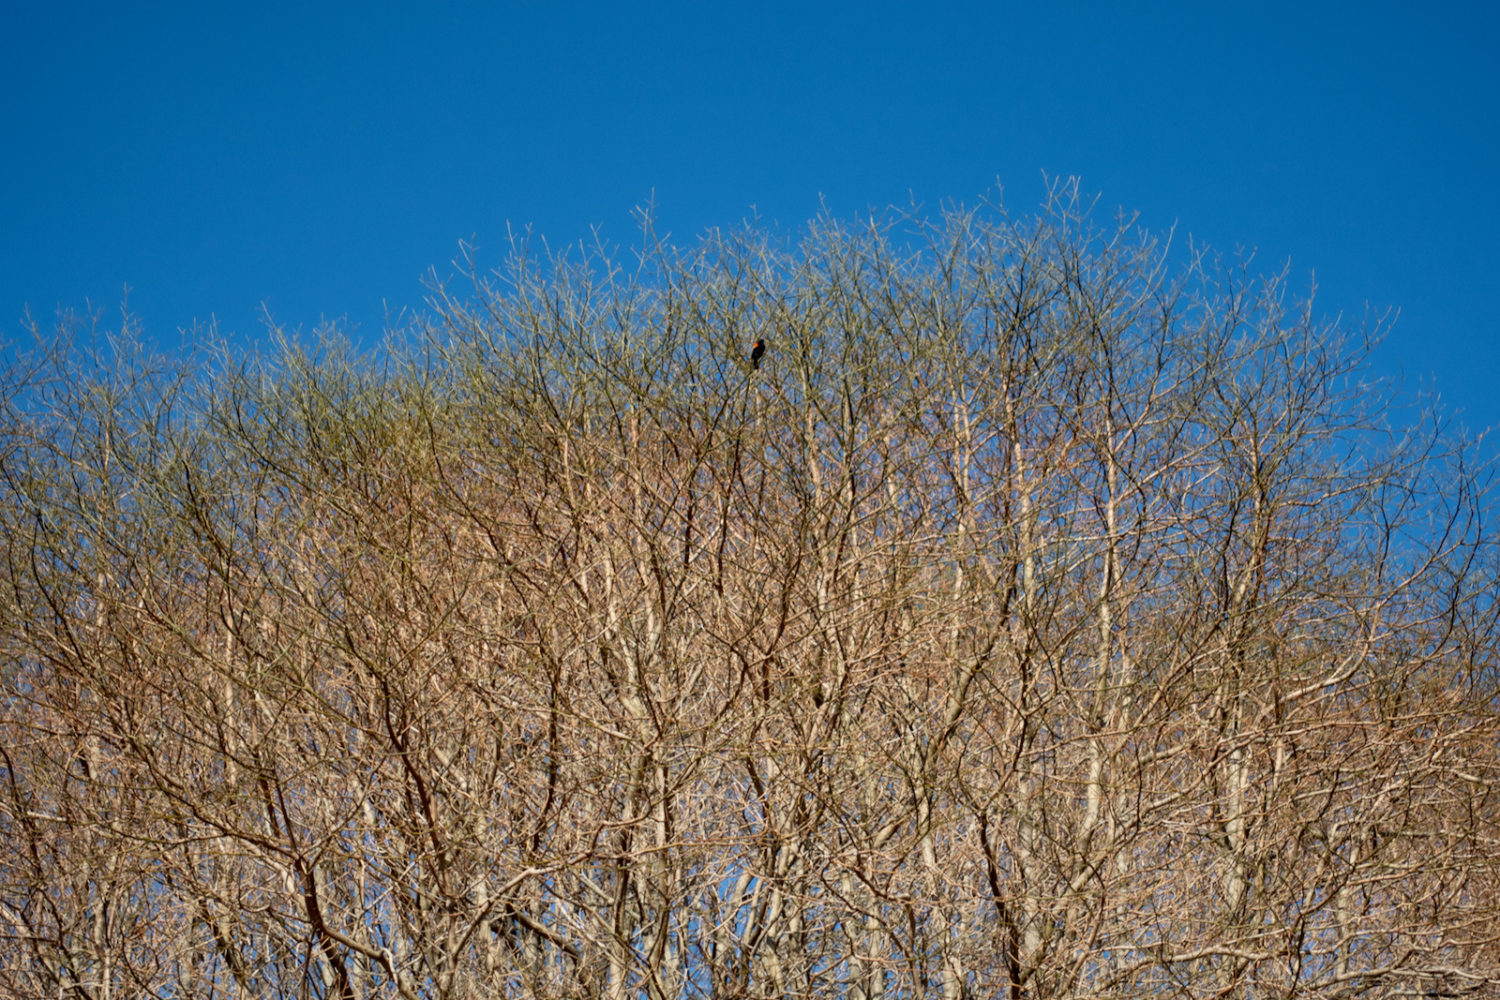 Red Winged Blackbird at the top of the trees